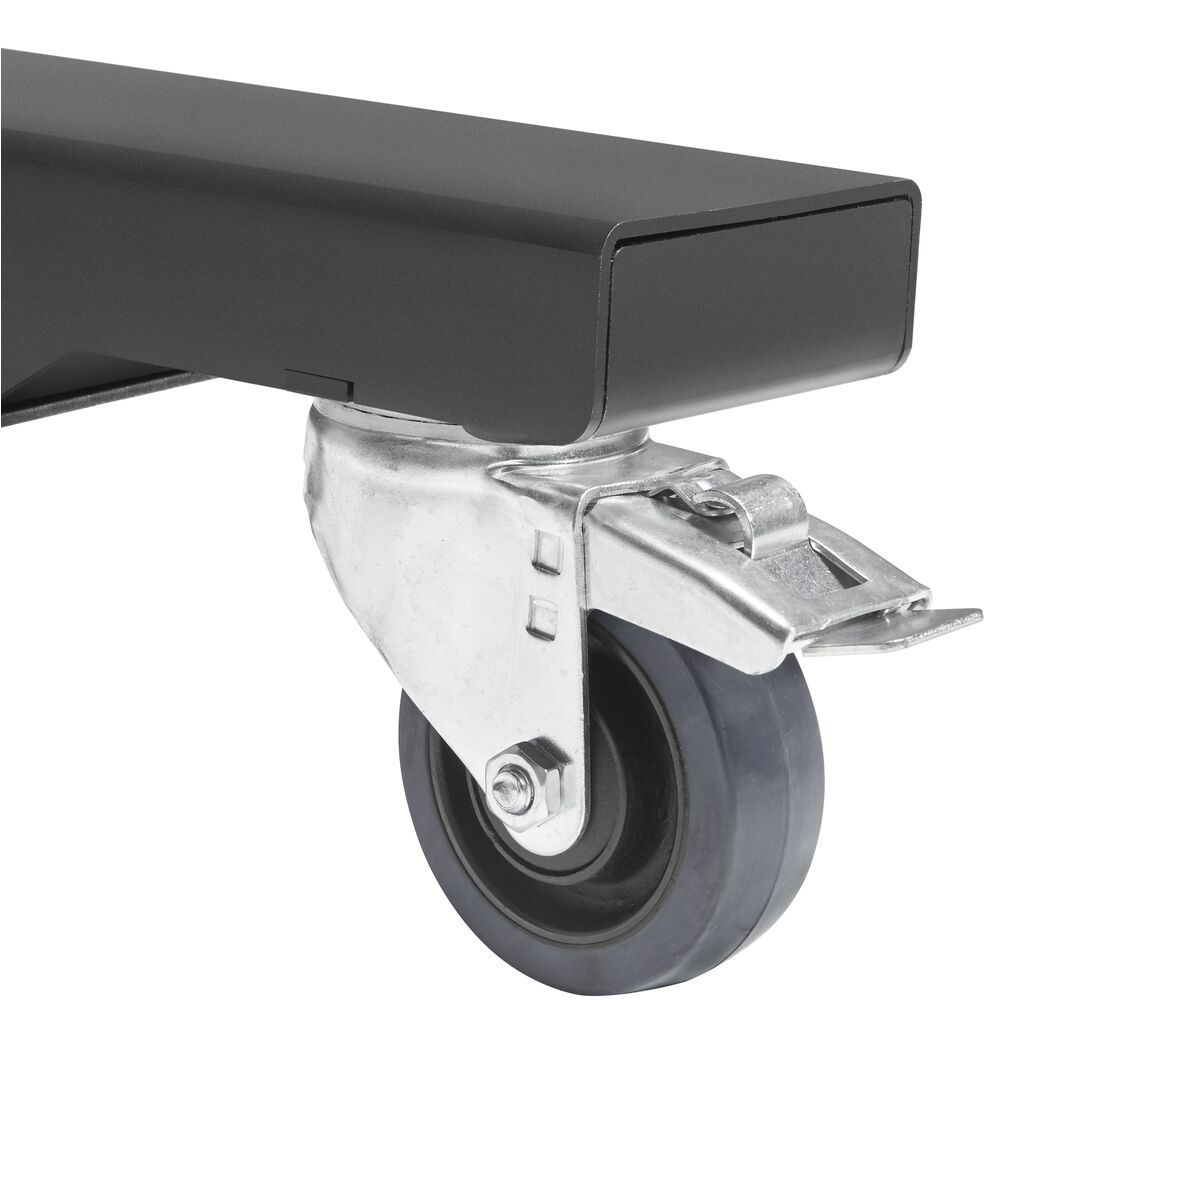 Vogel's PFT 8920 Video wall trolley base - Detail